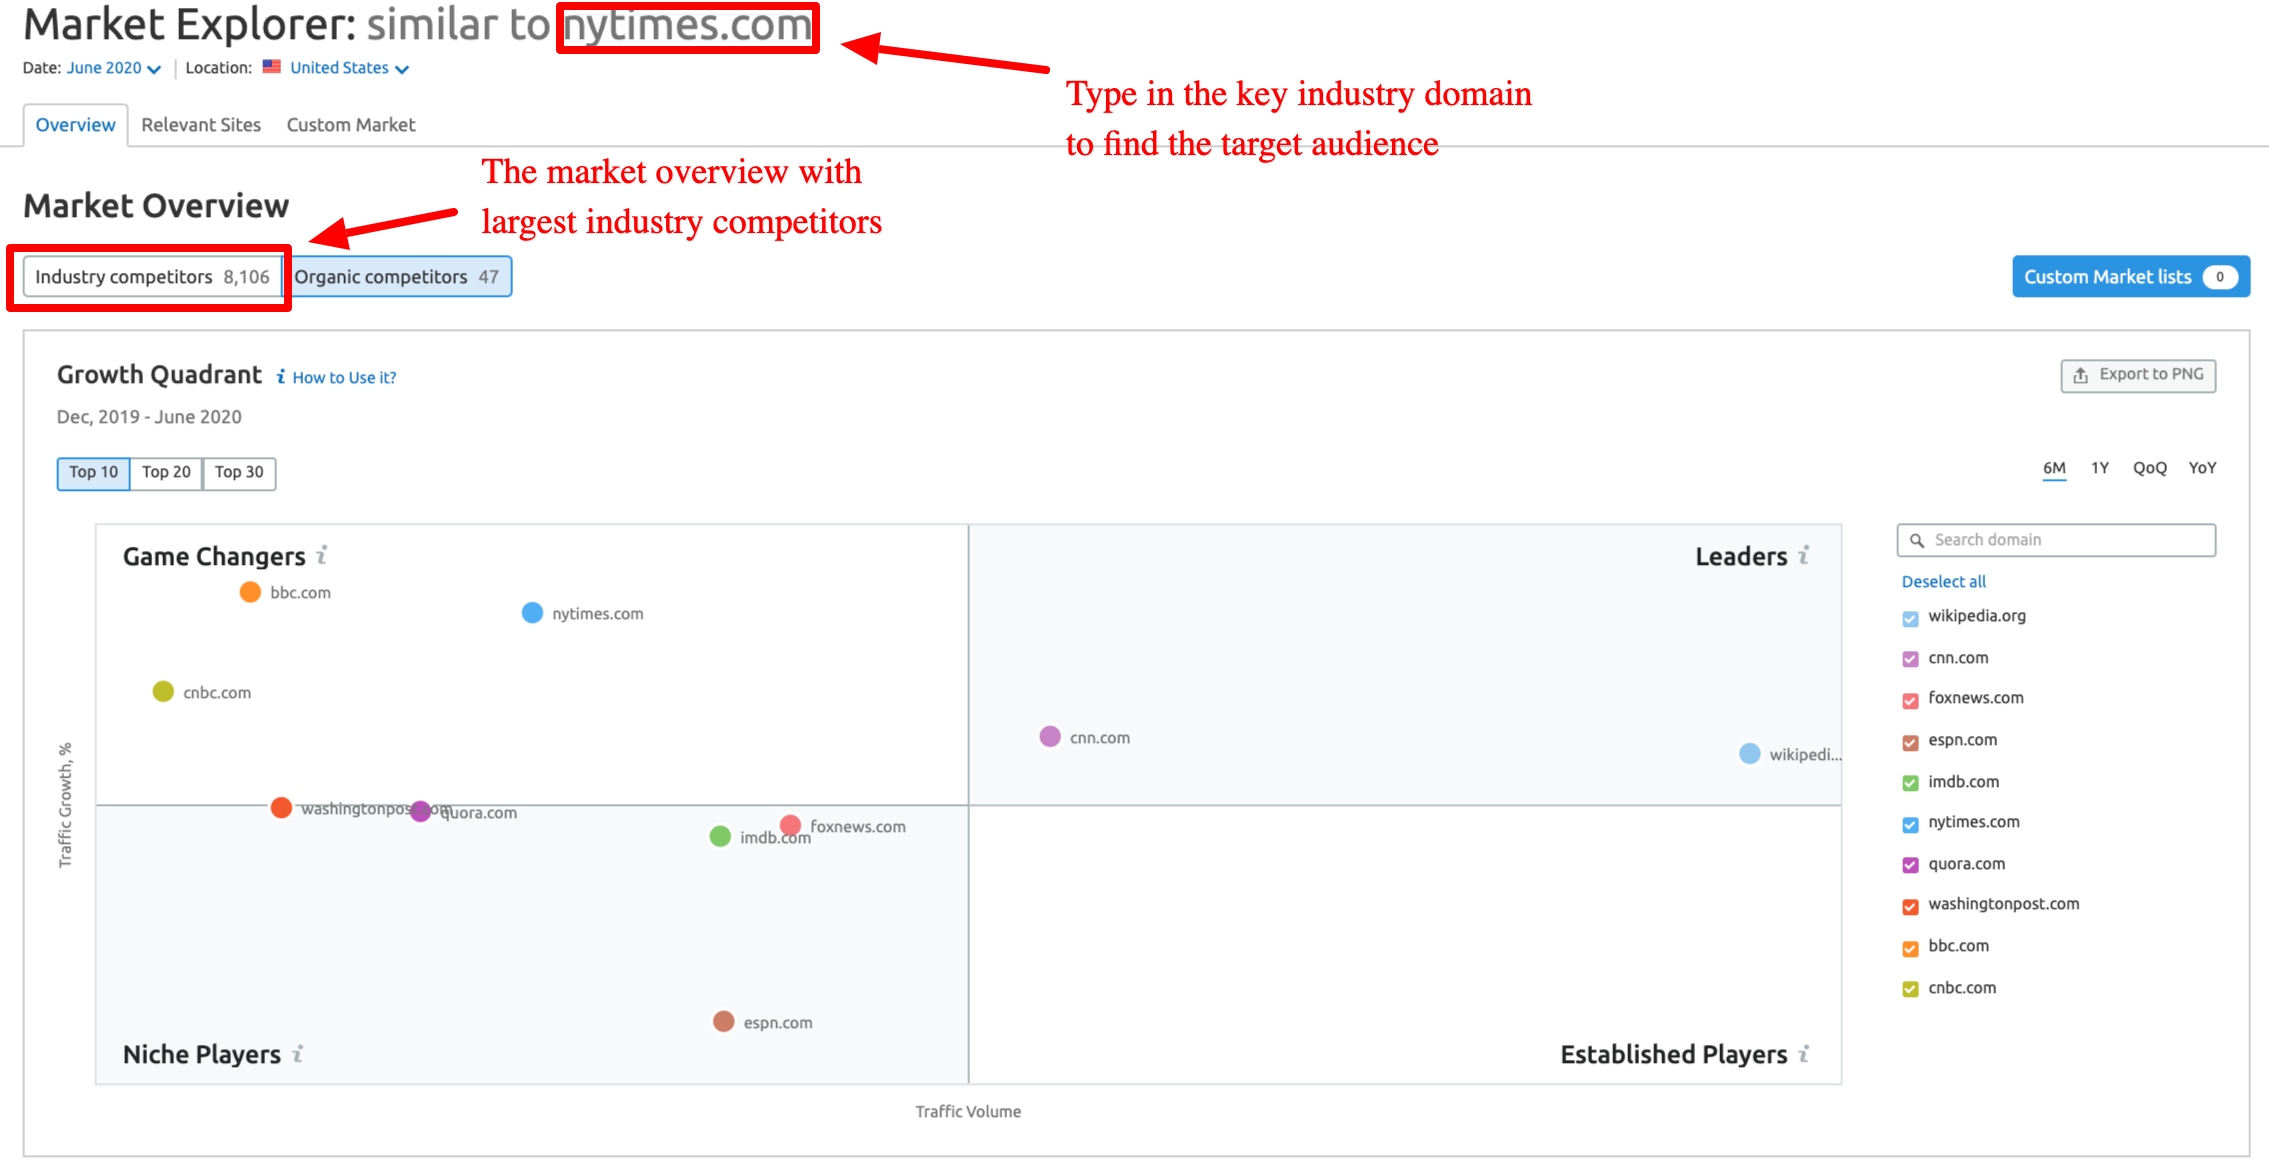 Market Explorer: How to identify biggest industry players